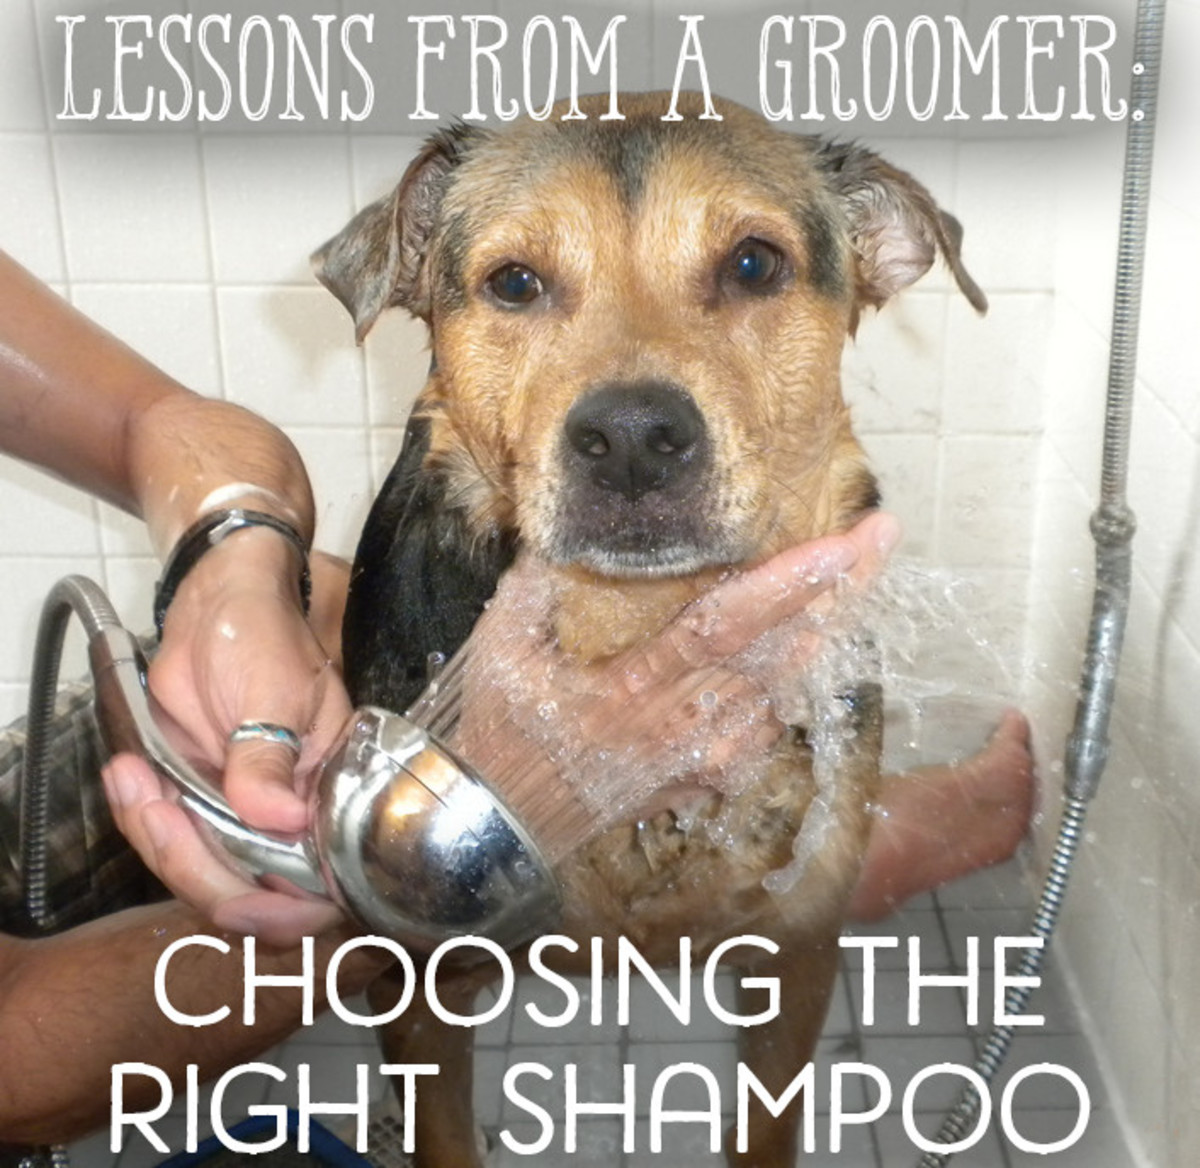 How to Choose the Best Dog Shampoo (For Fleas, Dandruff, & More)